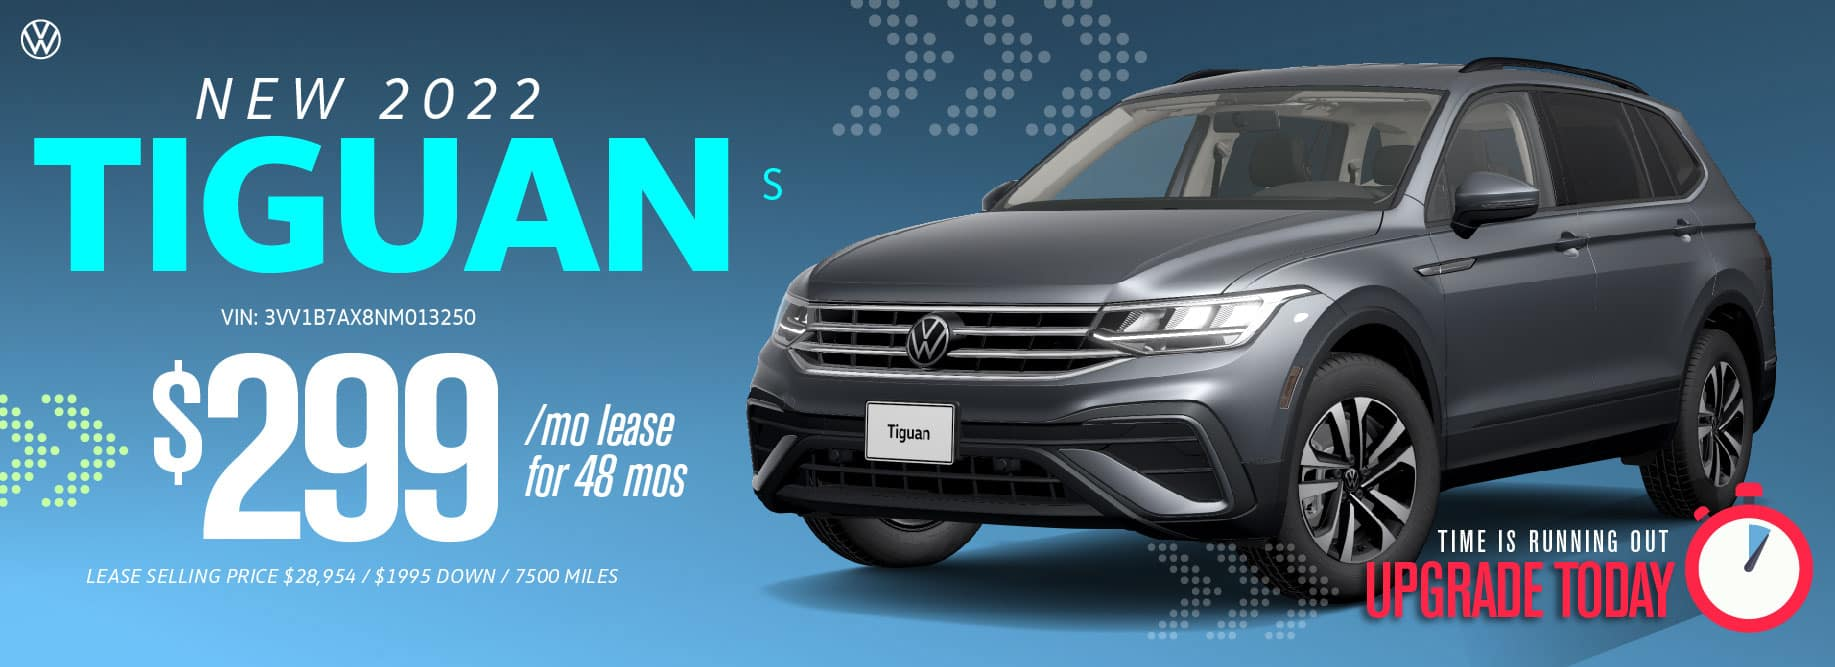 Lease the 2022 Tiguan from $299 a month at Volkswagen Clear Lake